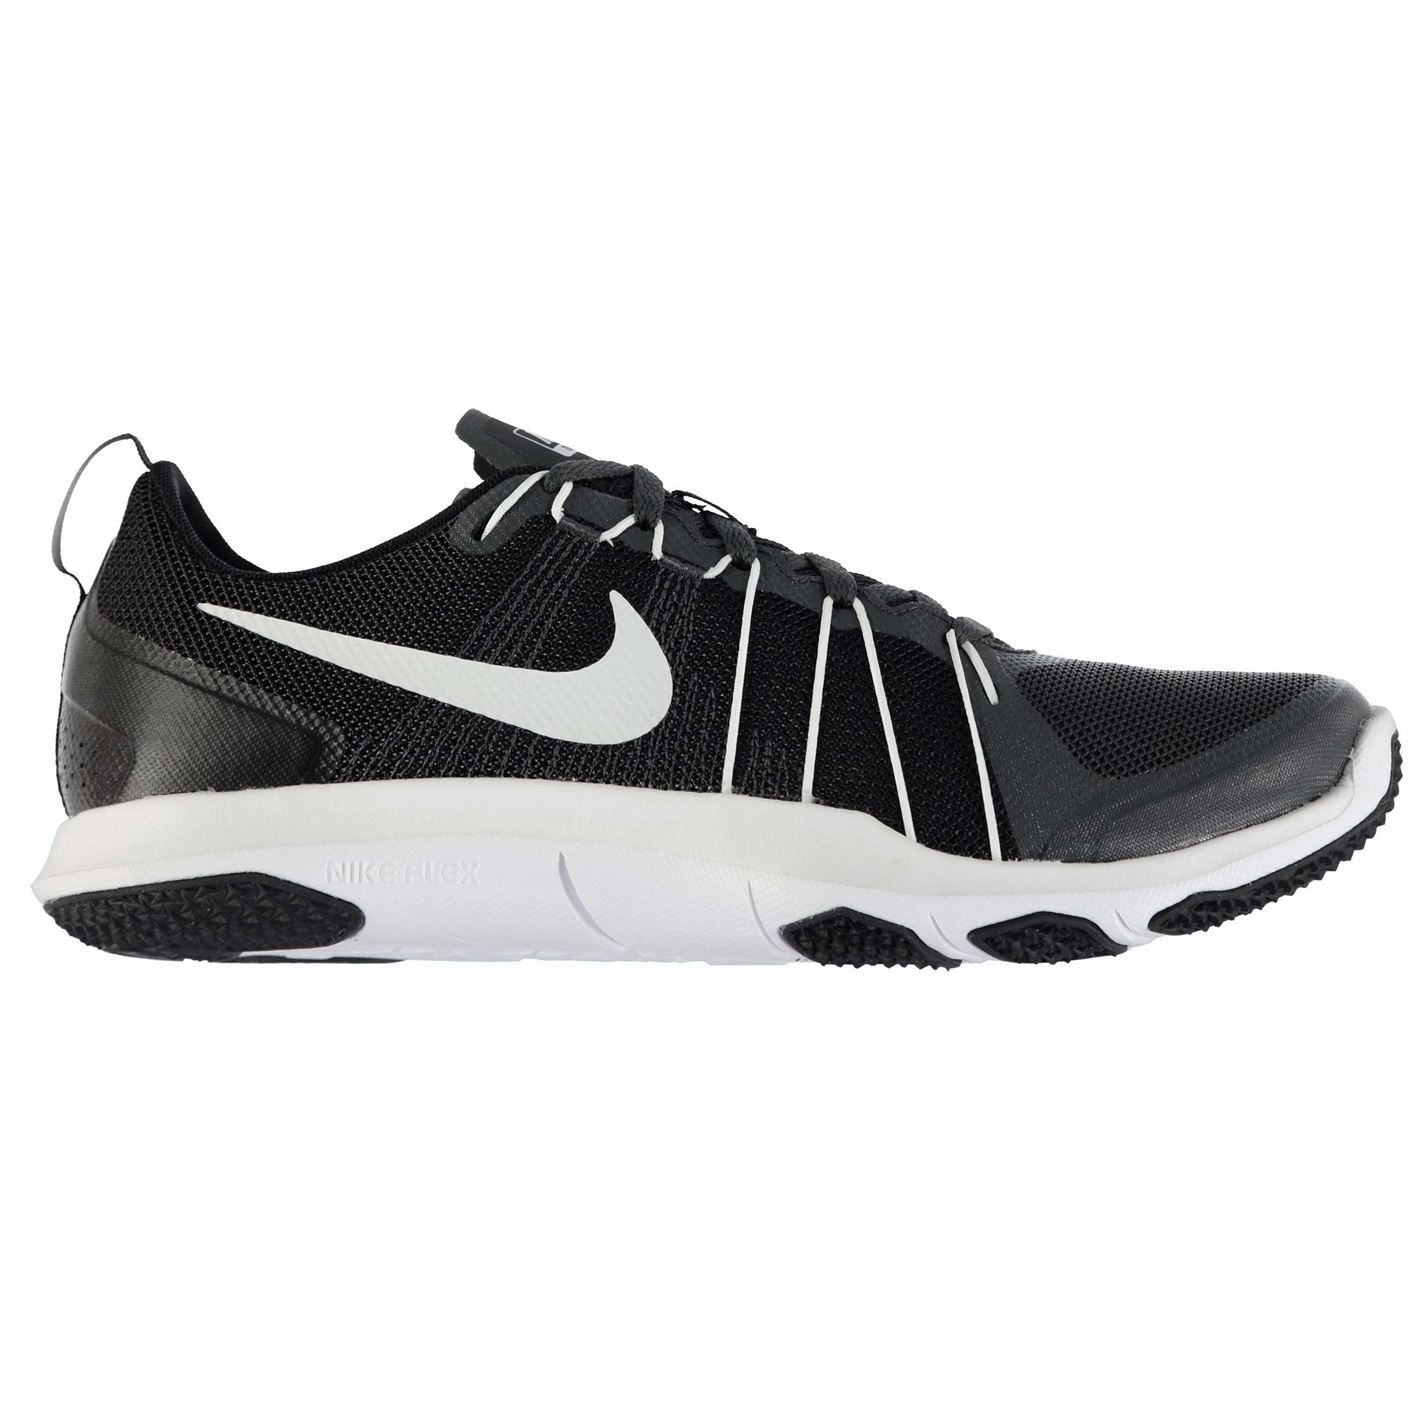 ... Nike Flex Train Aver Trainers Mens Anthracite/Wht Sports Shoes Sneakers  Footwear ...